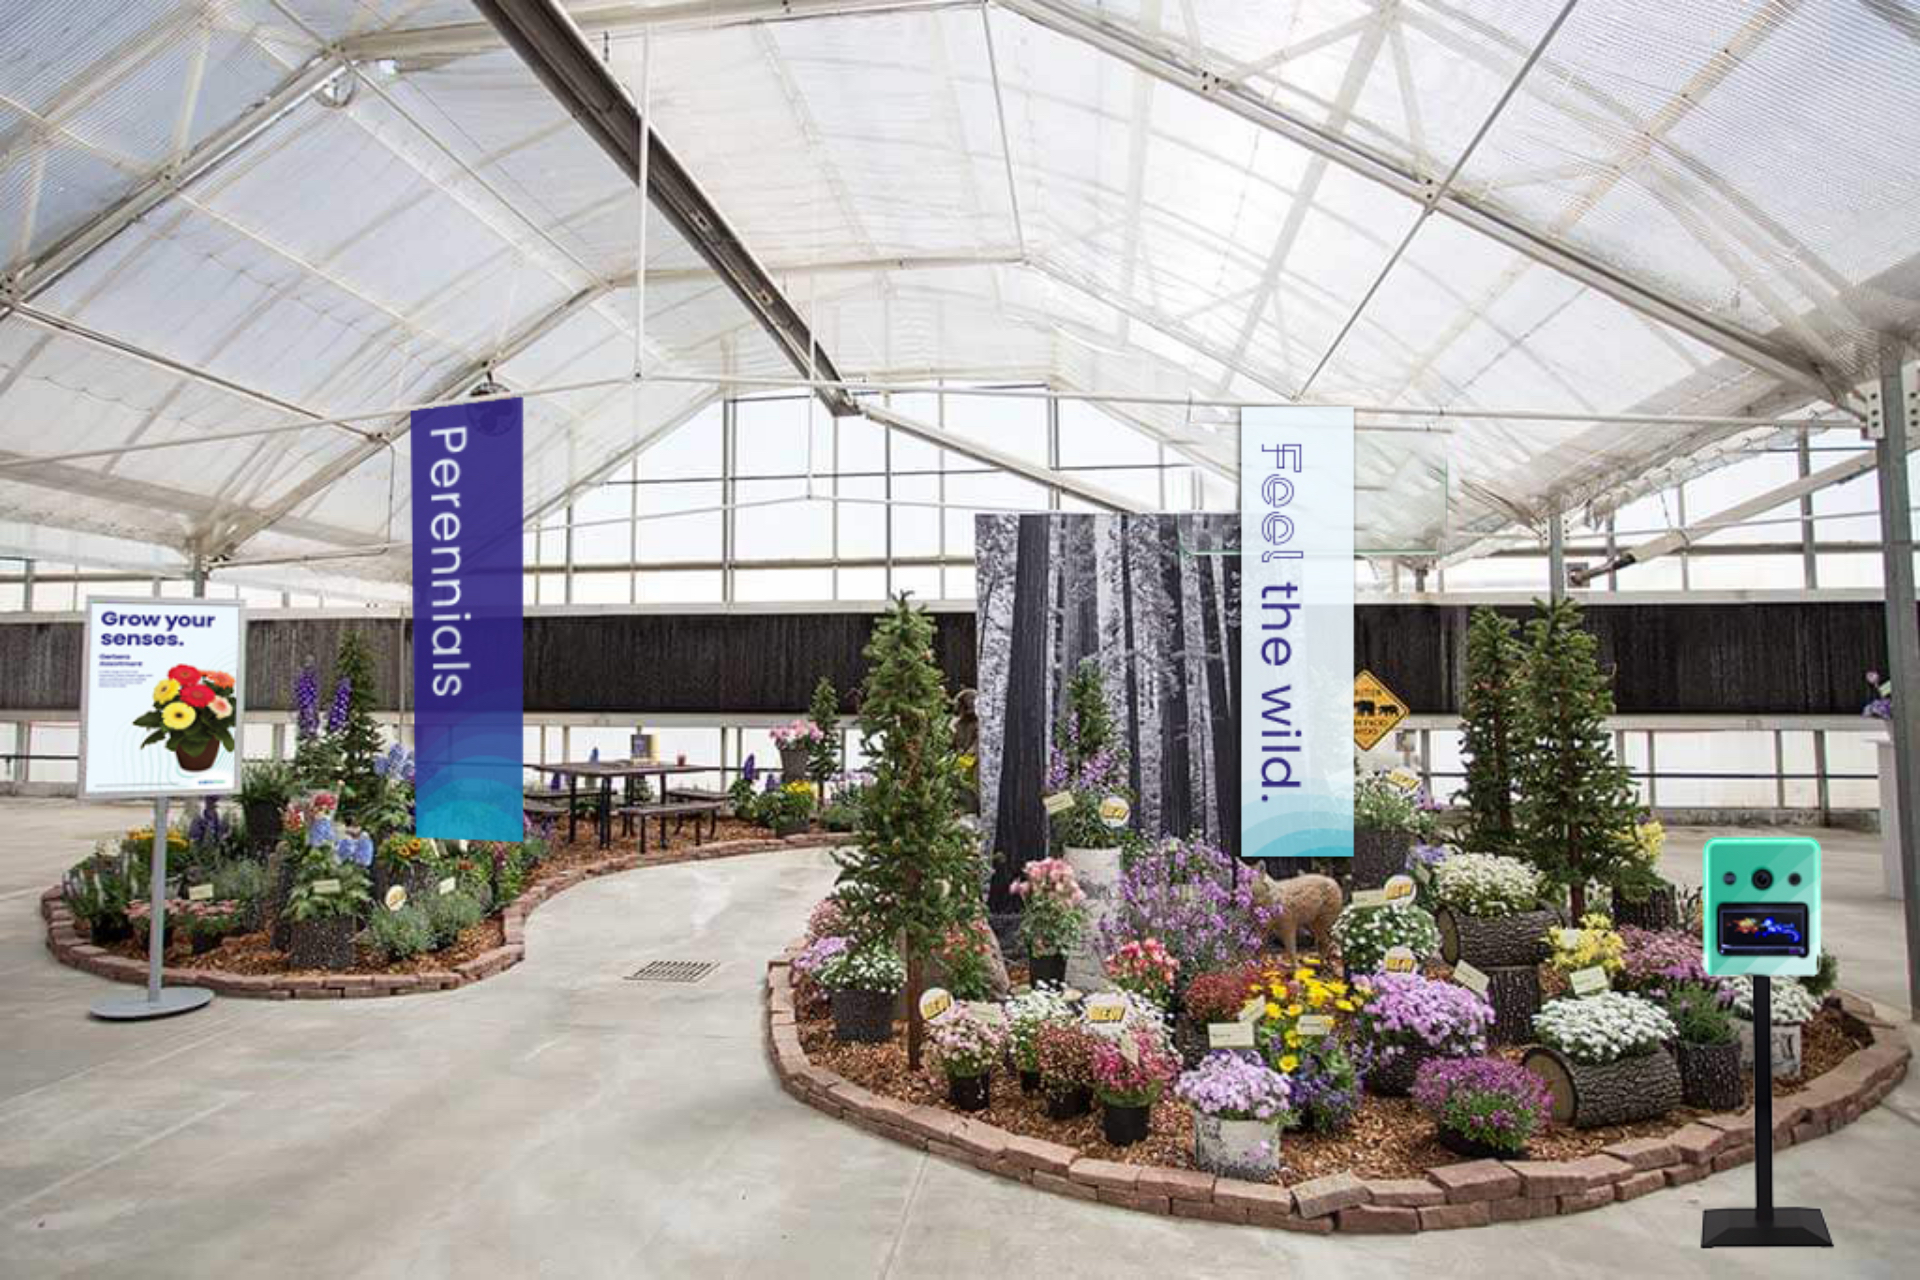 Flower trade show display mockup for 2020 event